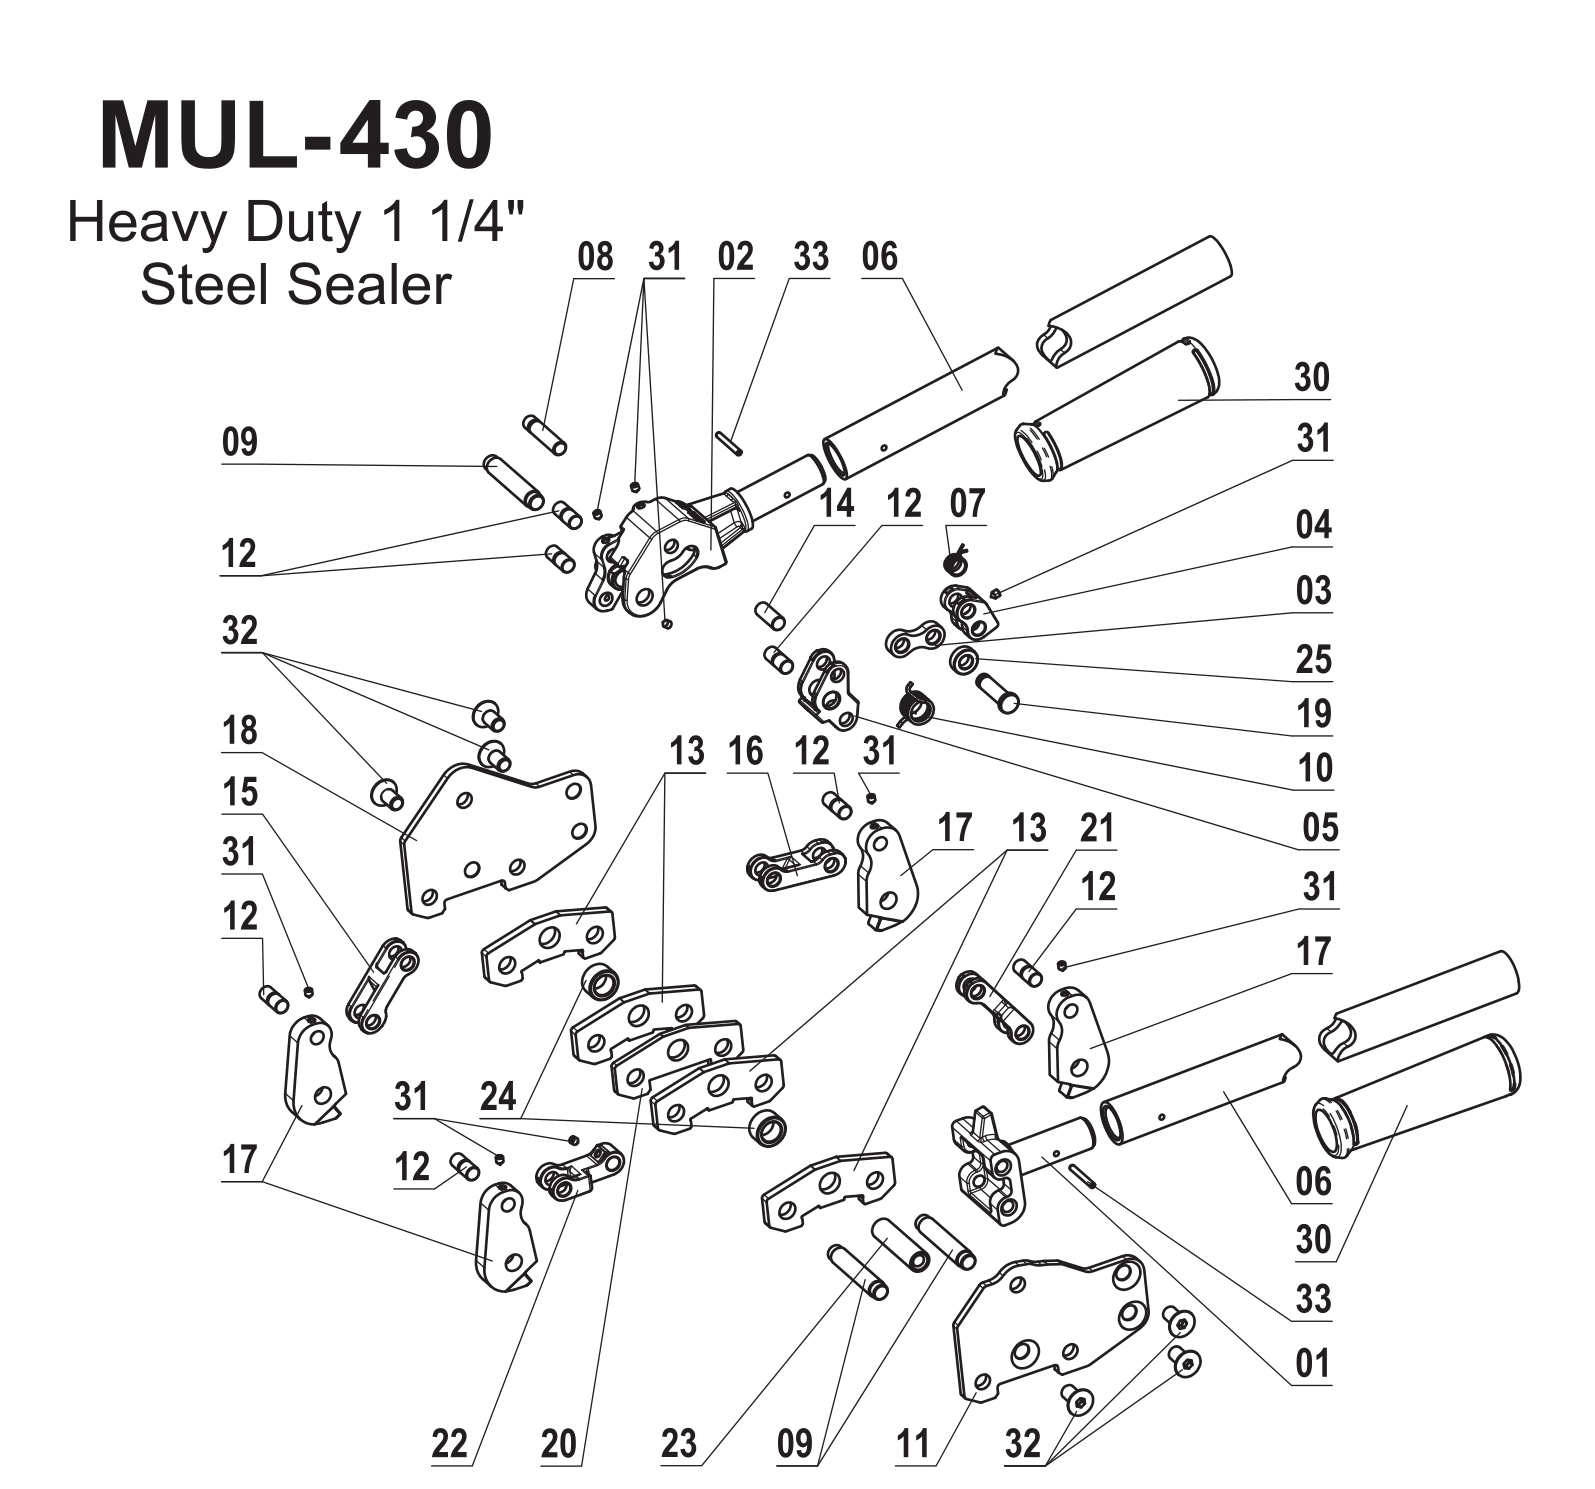 Parts For Mul 430 Heavy Duty Dual Action Sealer For Steel Strapping